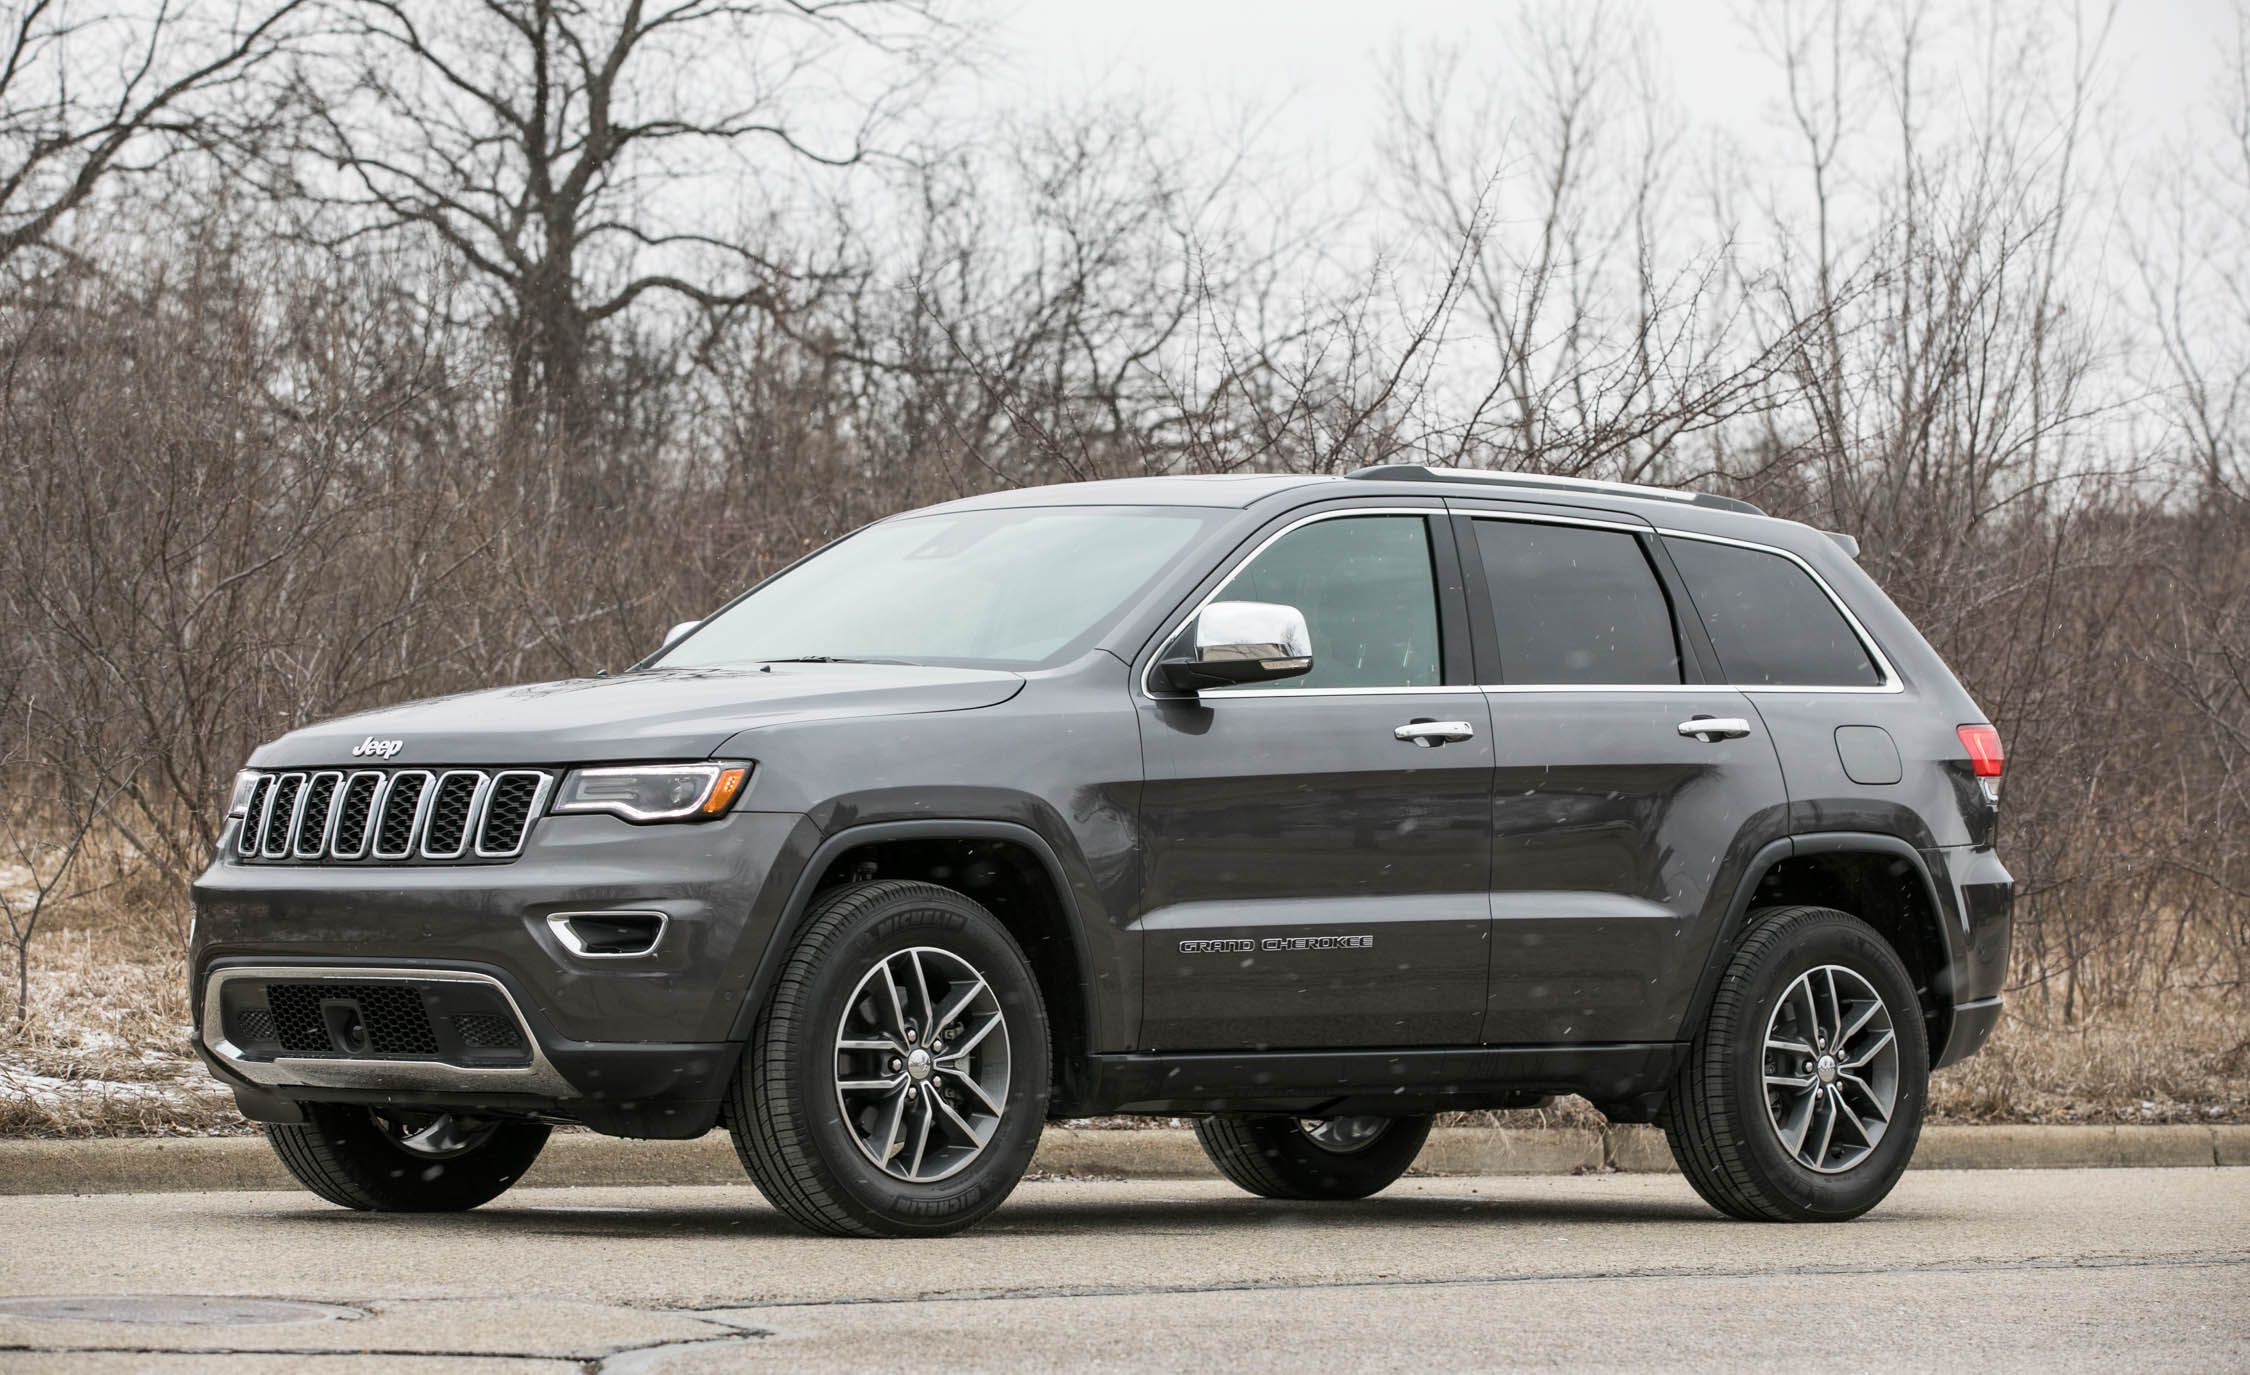 2019 jeep grand cherokee reviews jeep grand cherokee. Black Bedroom Furniture Sets. Home Design Ideas